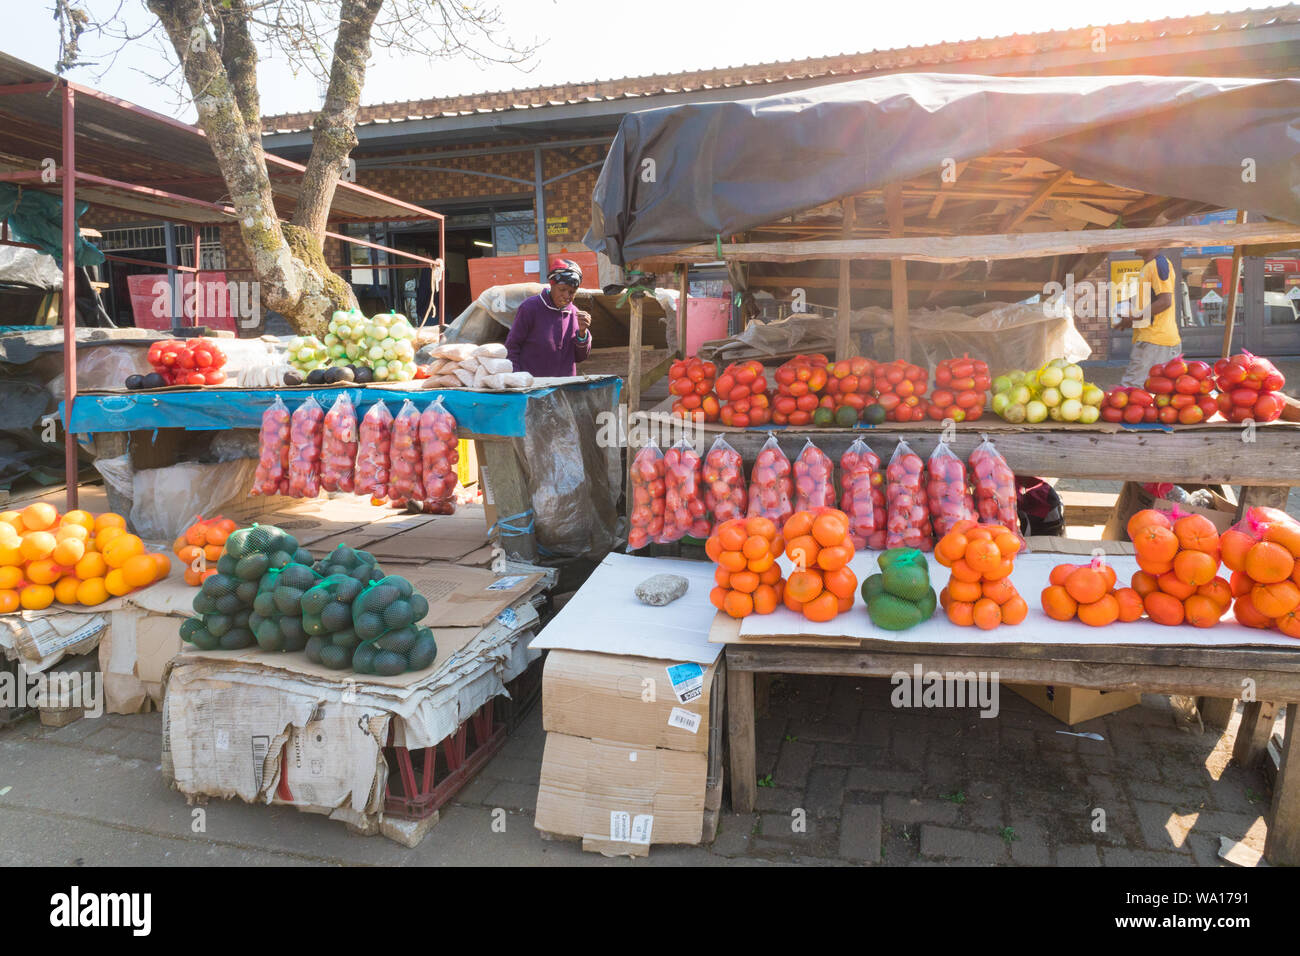 Black African lady or woman at her street vendor stall which displays a selection of bags of fruit and vegetables in Graskop, Mpumalanga, South Africa Stock Photo